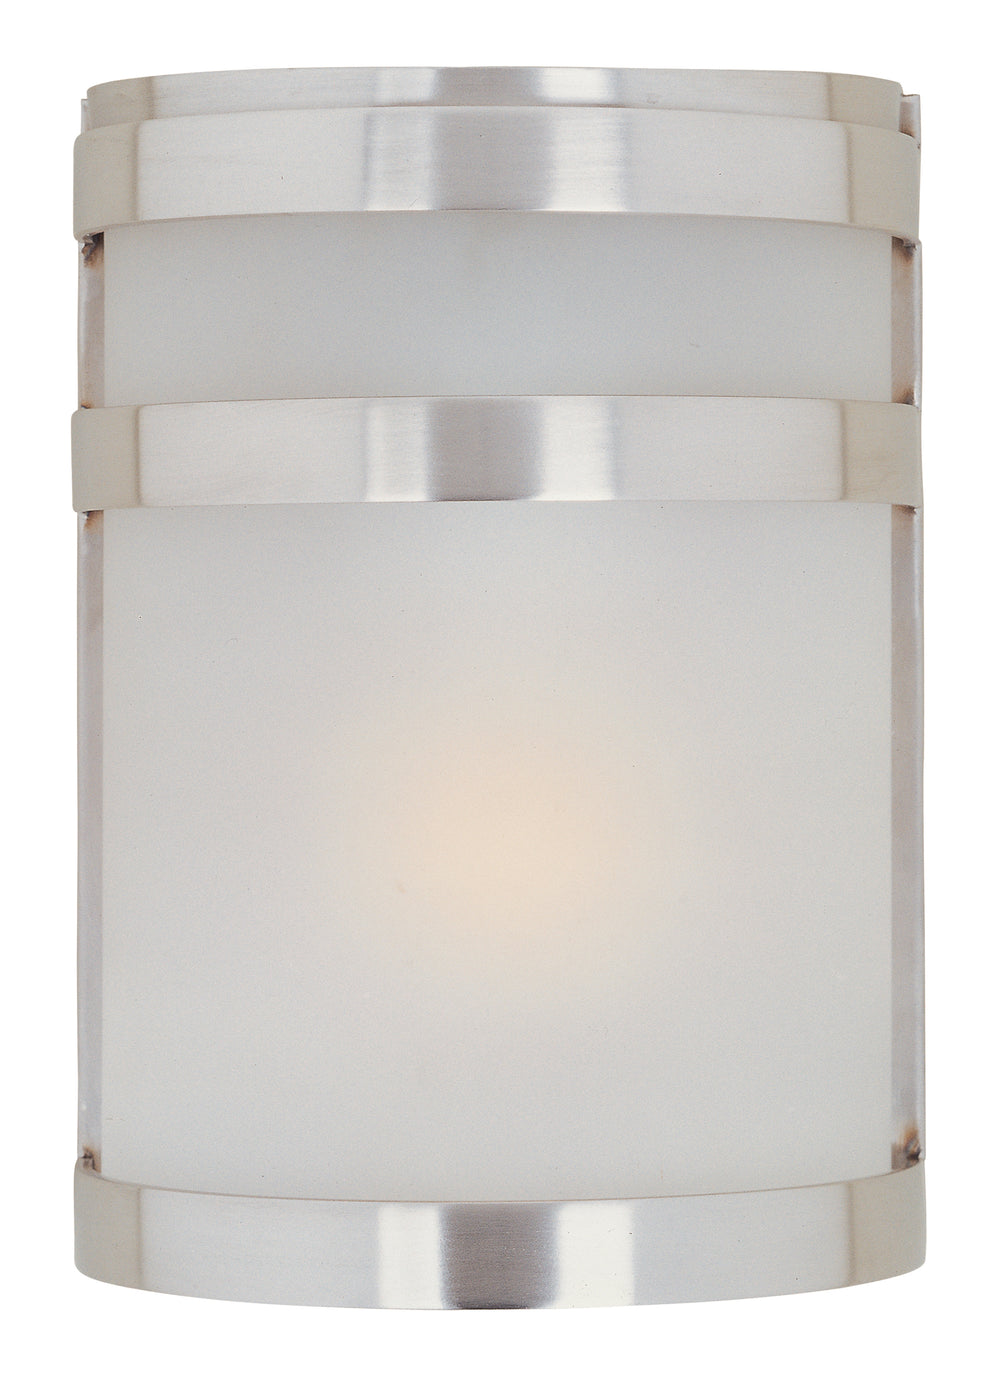 Maxim Lighting Arc LED Single Outdoor Wall Sconce 65000FTSST